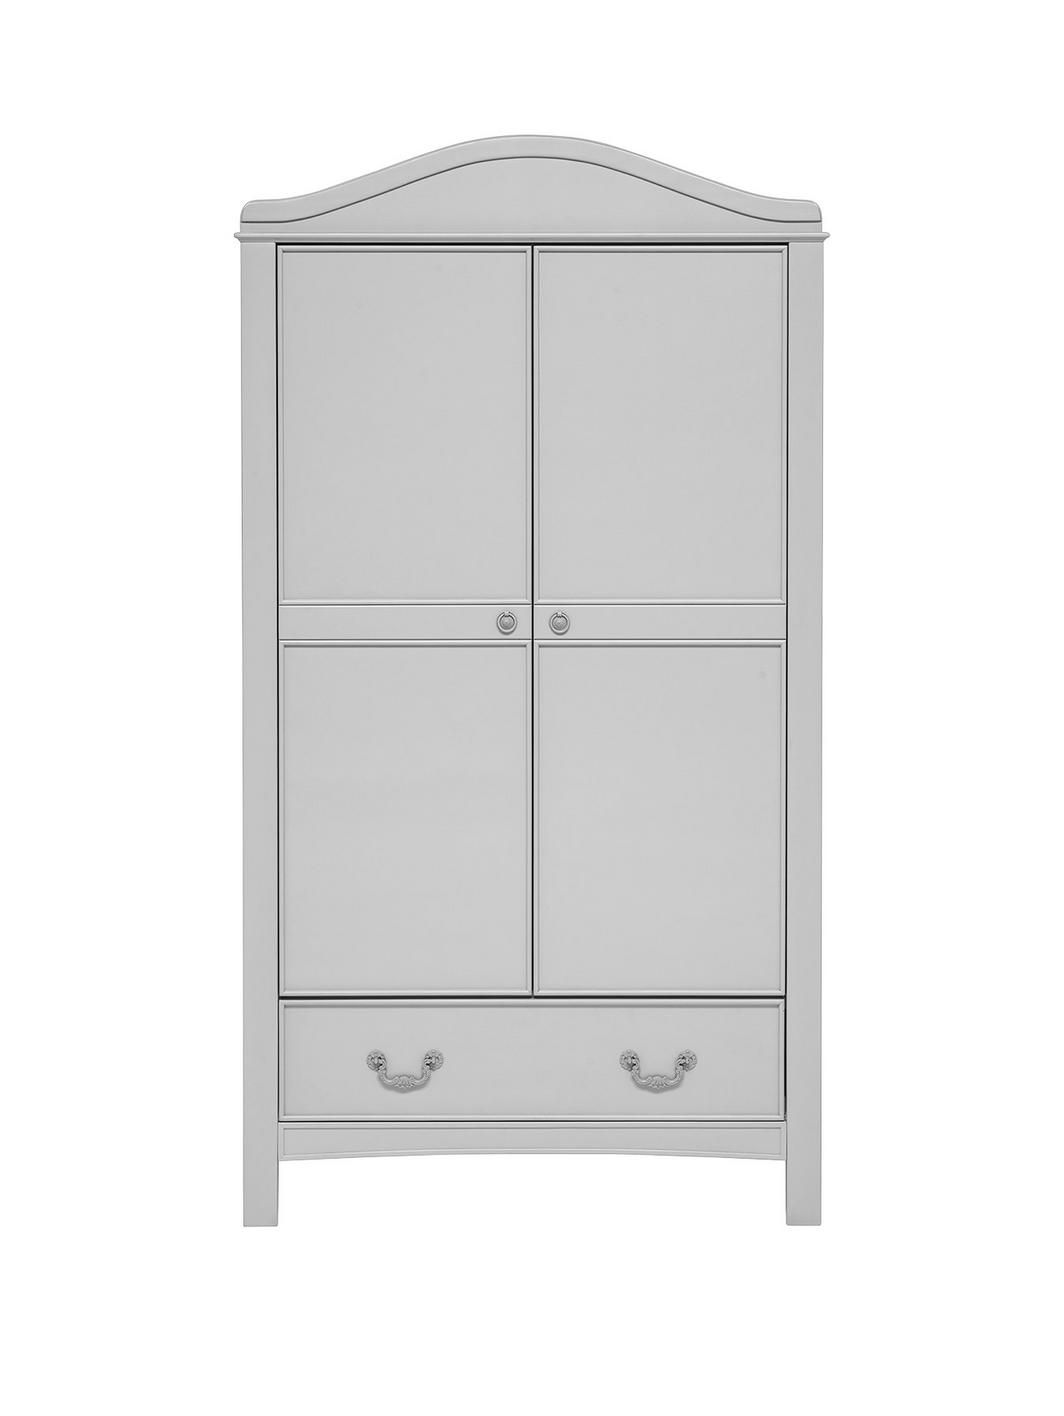 East Coast Toulouse Wardrobe Toulouse East Coast And Master Bedroom # Muebles Toulouse